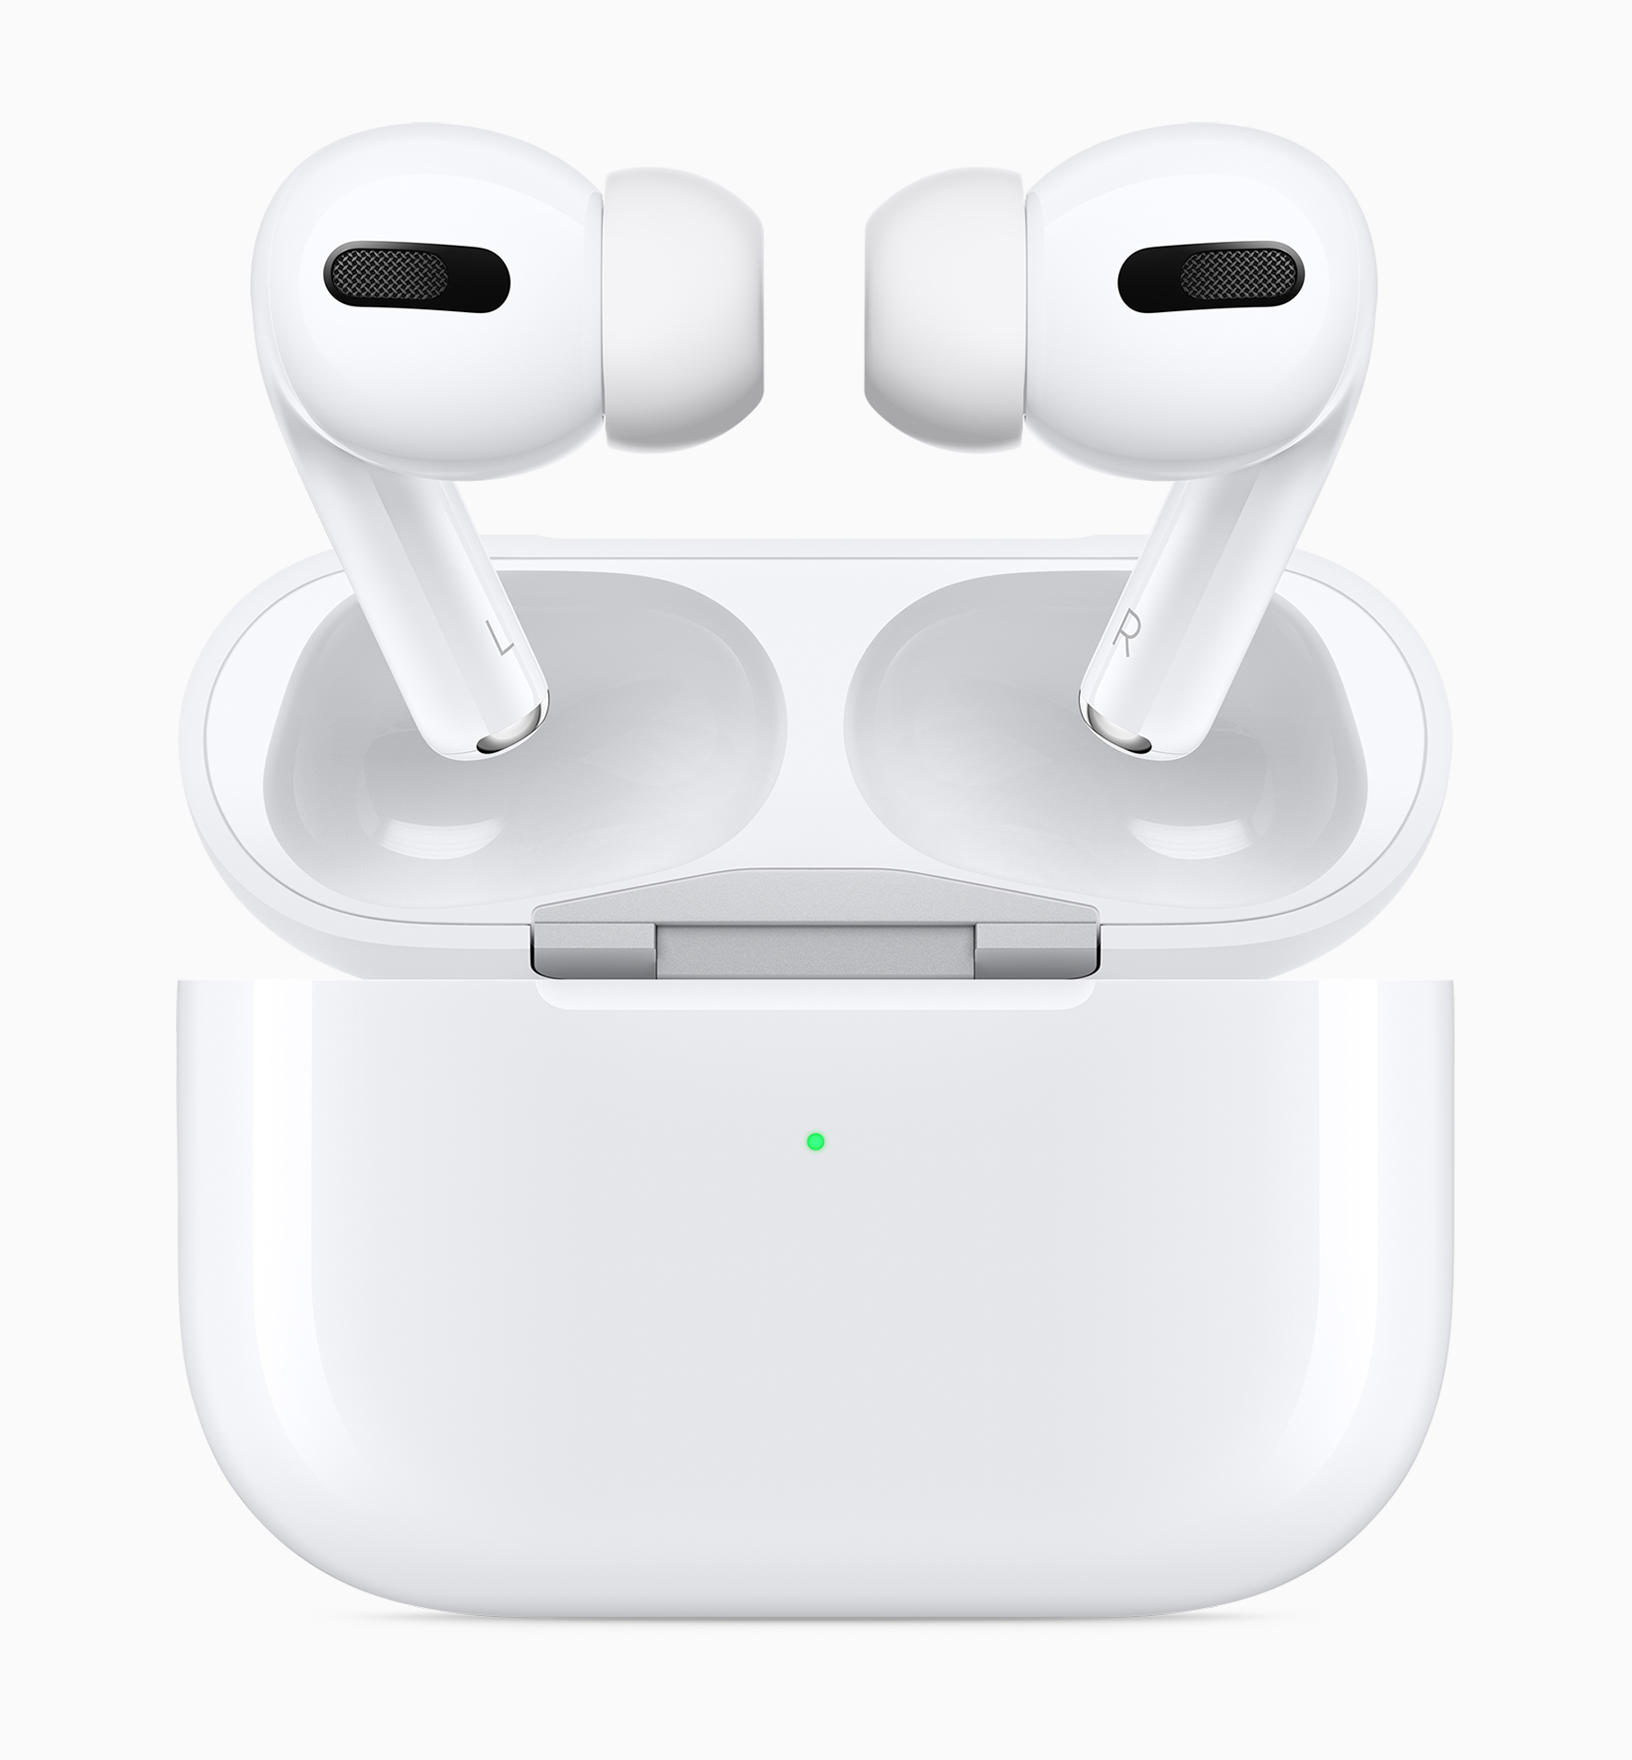 apple-airpods-pro-new-design-case-and-airpods-pro-102819.jpg